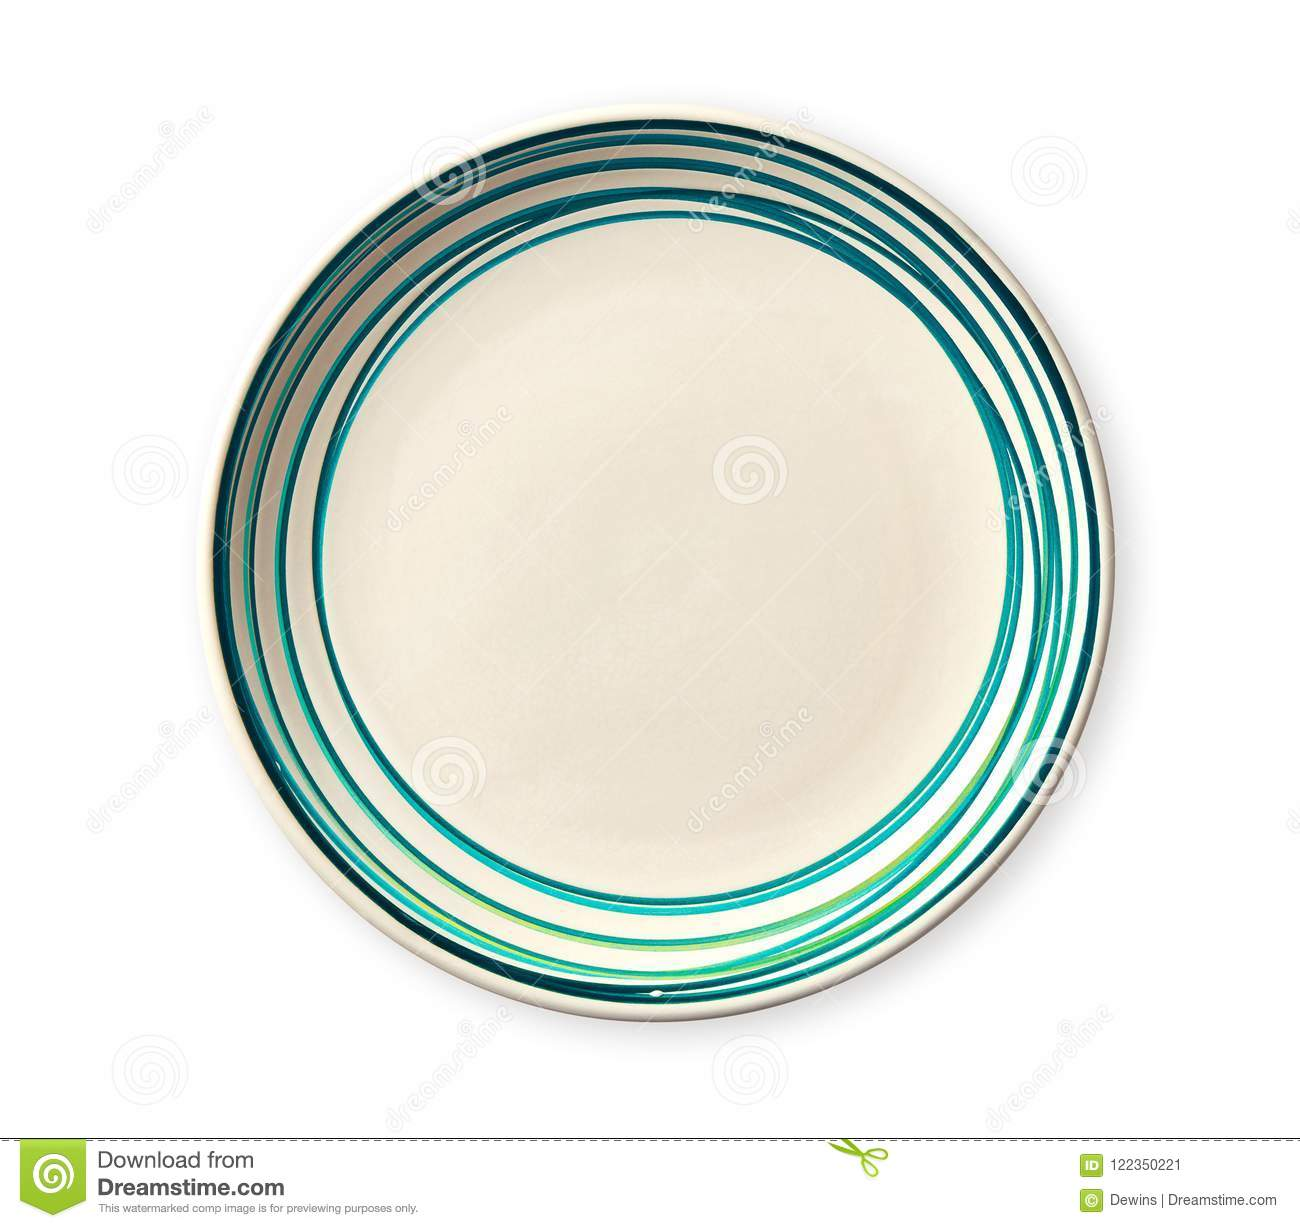 Empty plate with blue pattern edge, Ceramic plate with spiral pattern in watercolor styles, isolated on white background